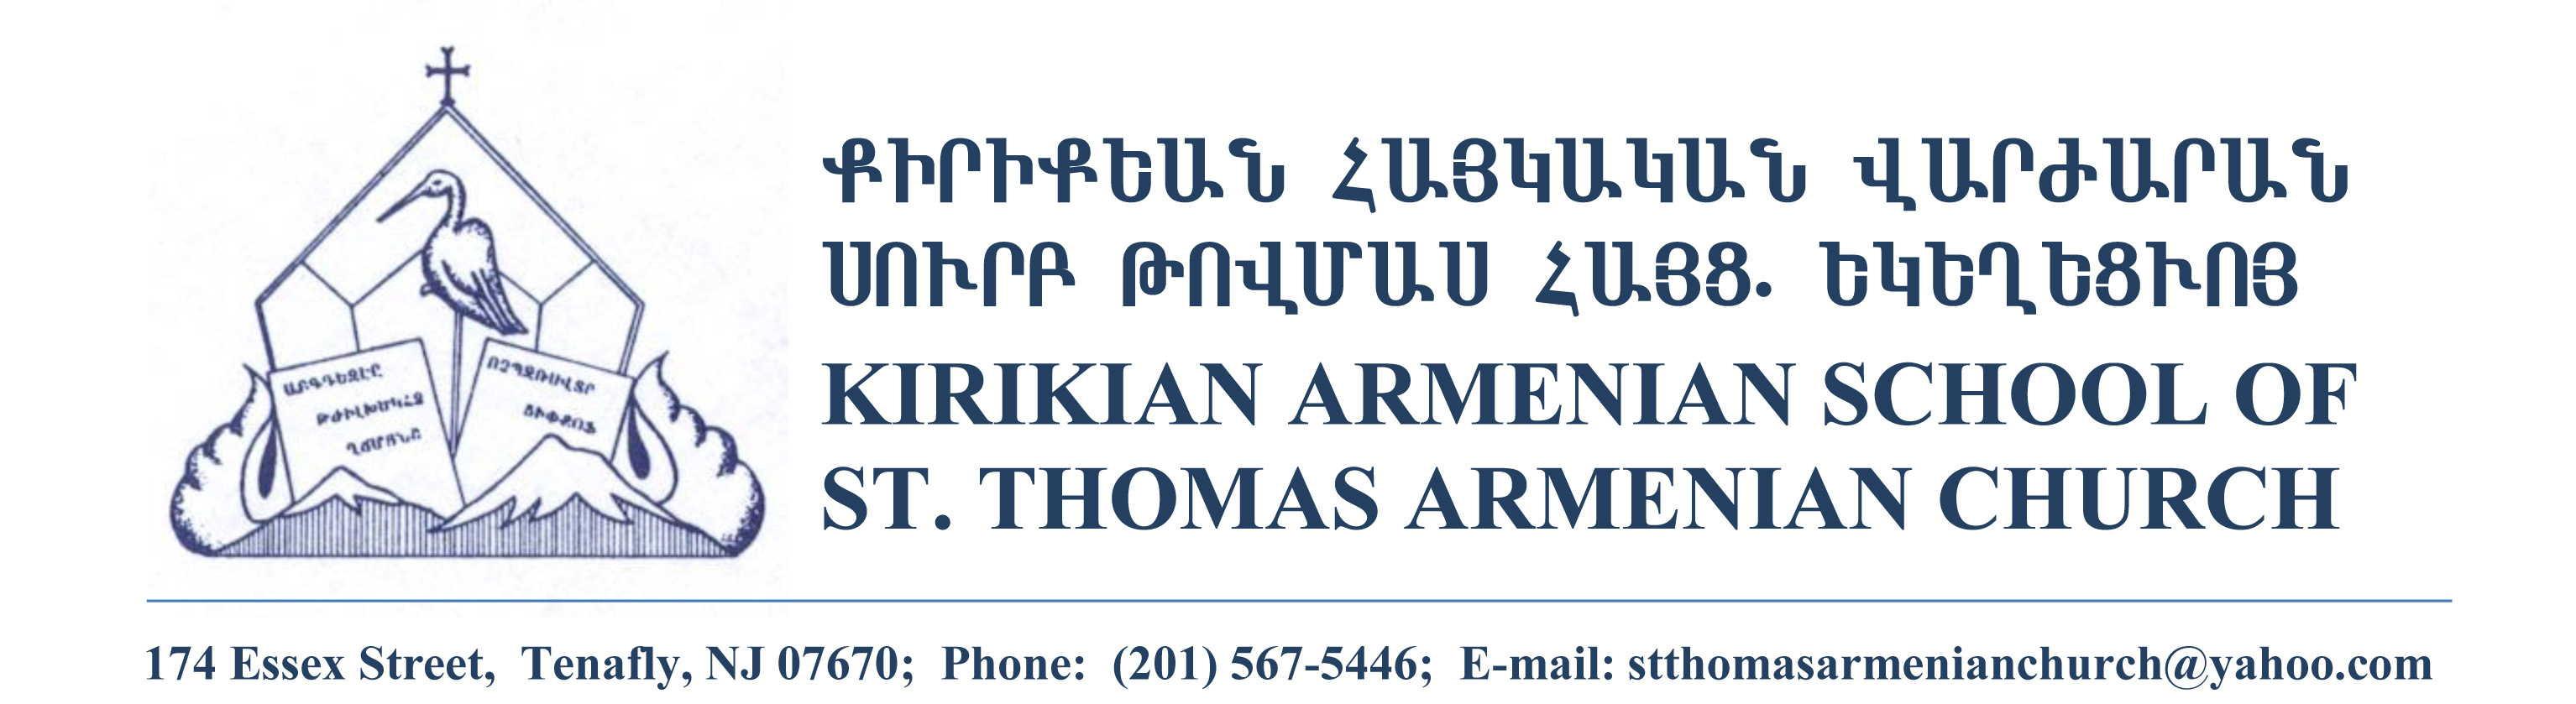 Kirikian Armenian School